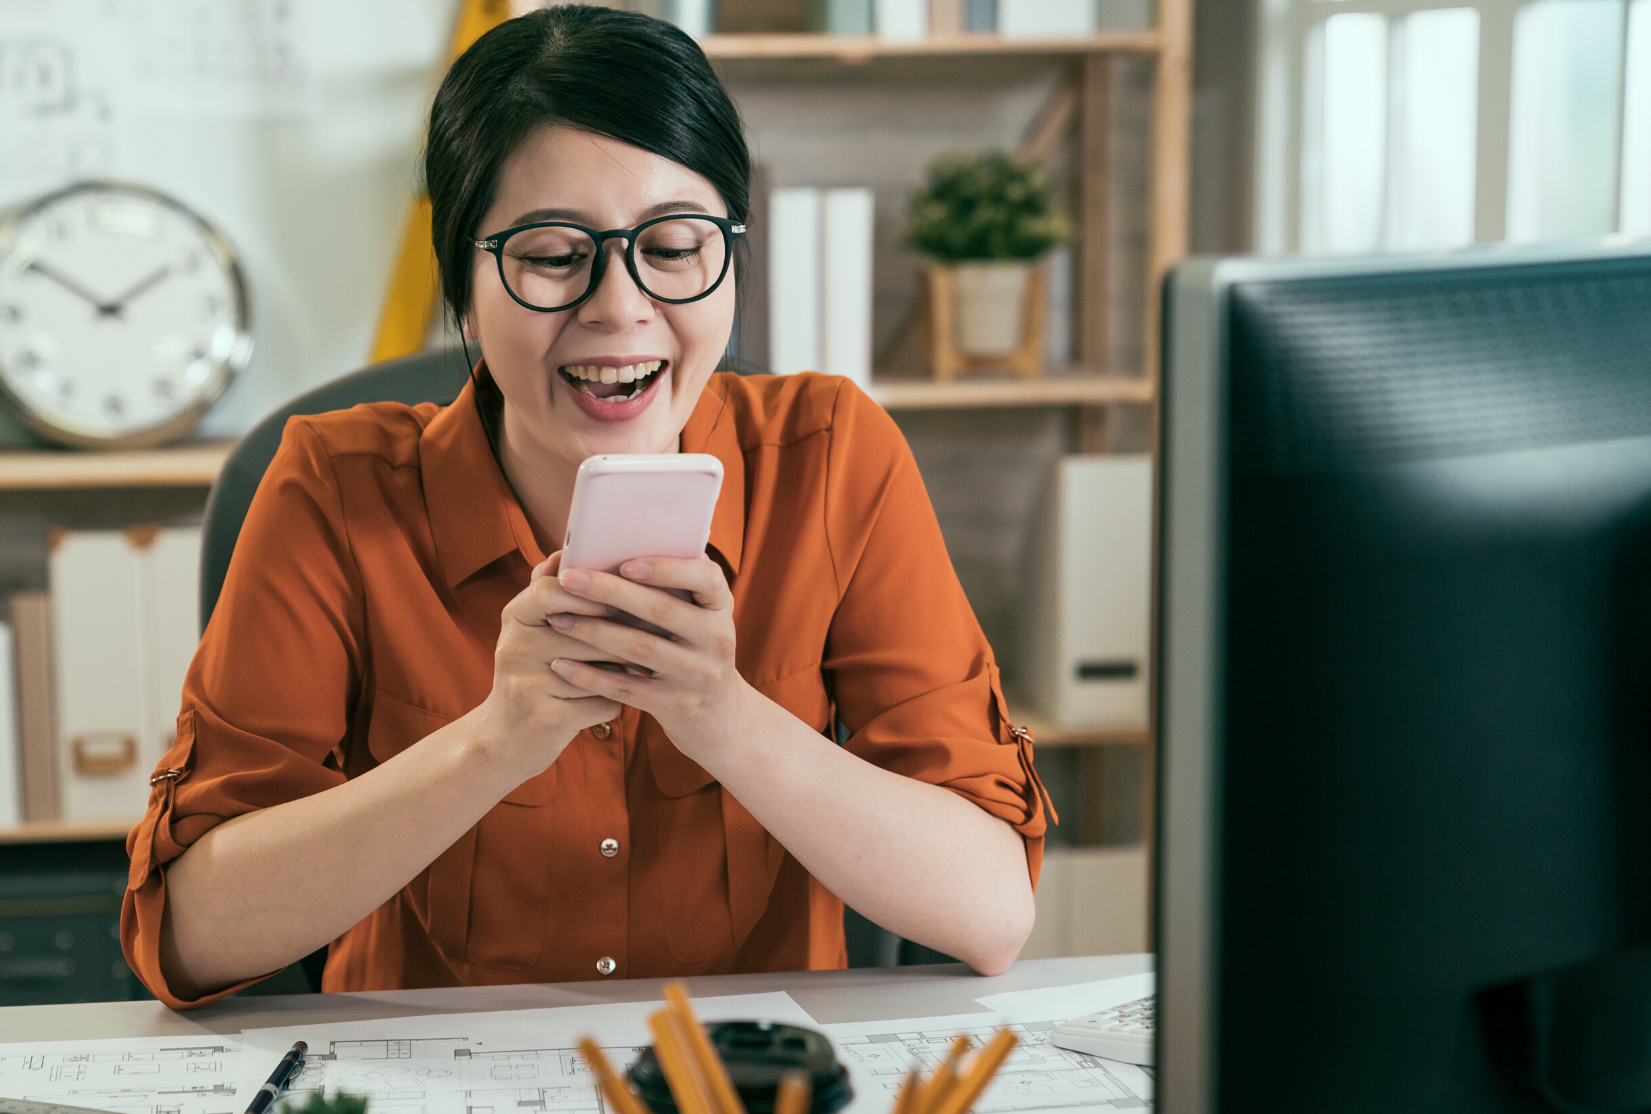 Woman happy about thank you text